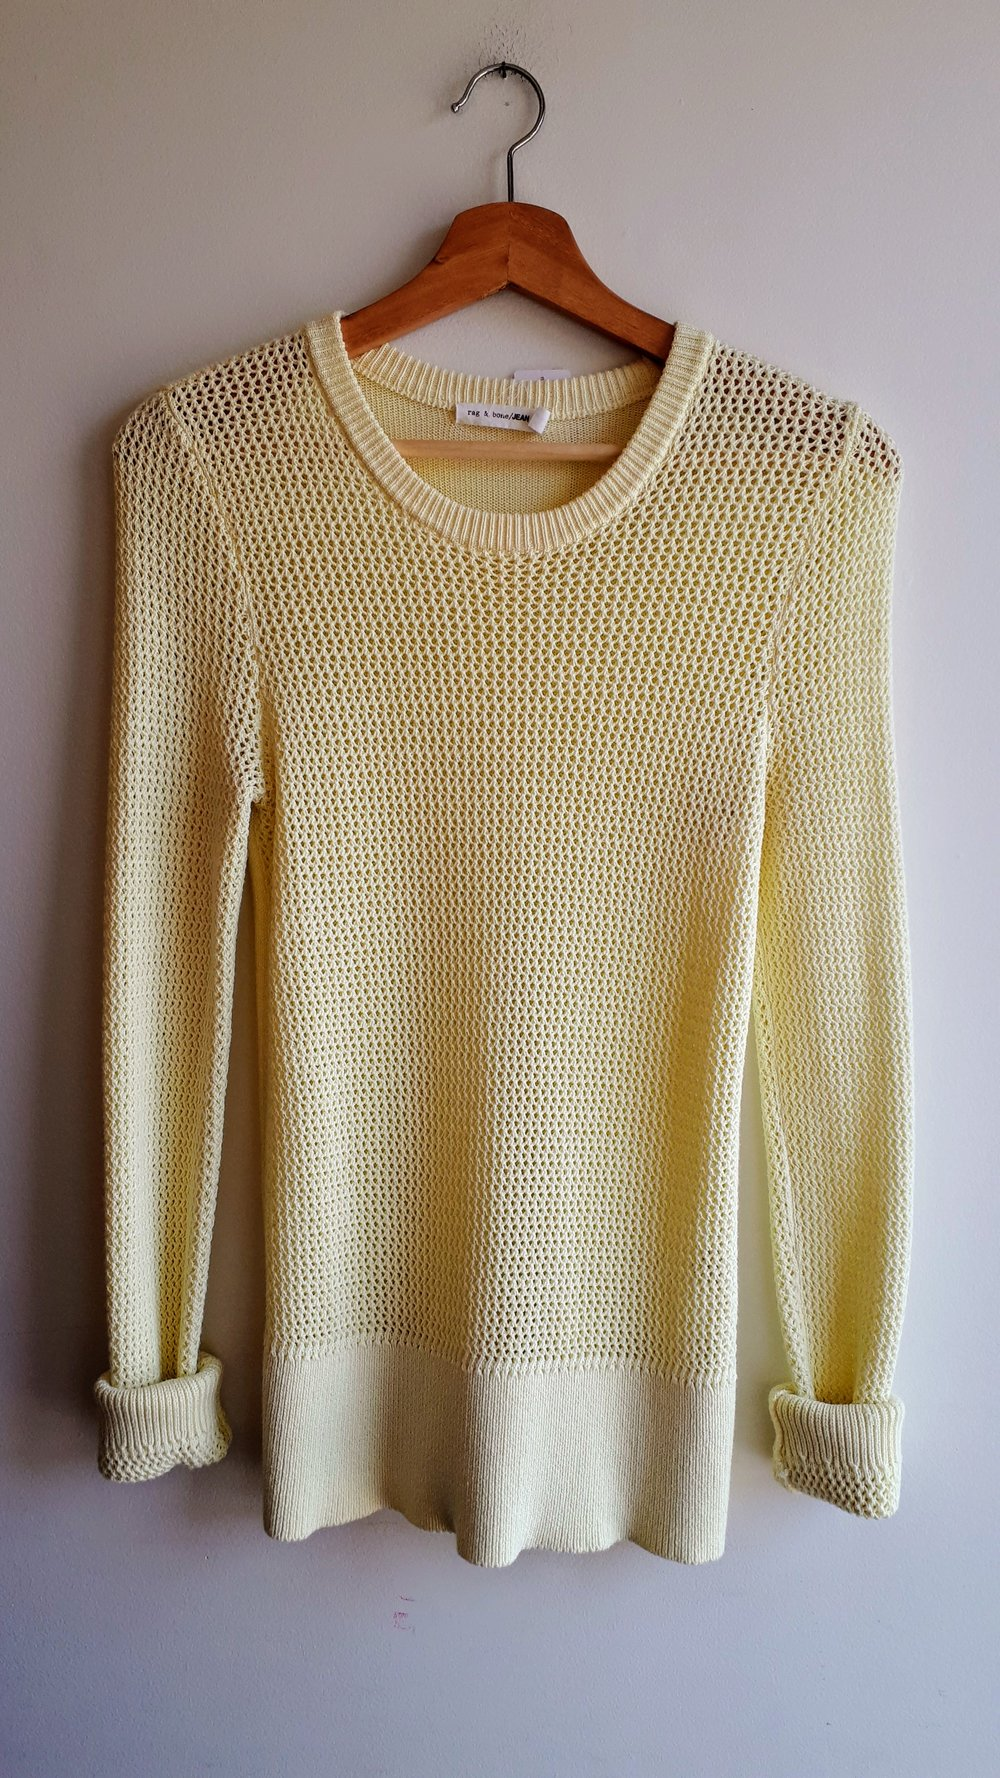 Rag & Bone sweater; Size S, $42